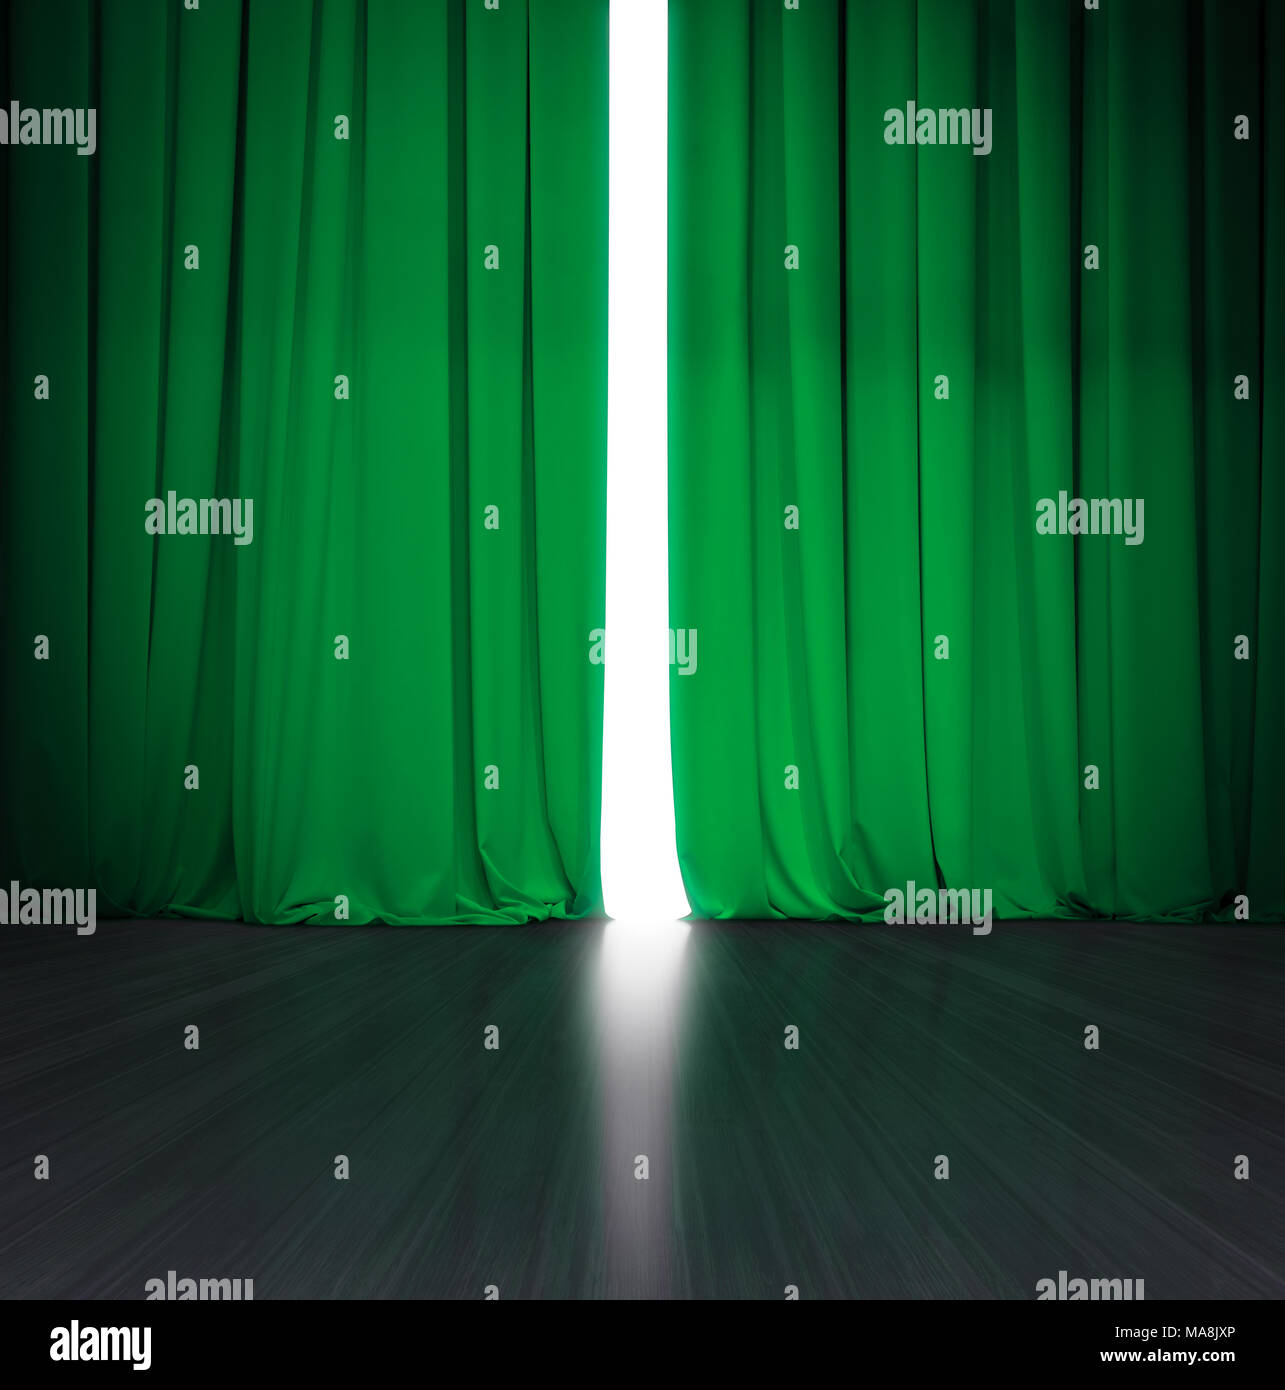 Dark Green Velvet Curtain High Resolution Stock Photography And Images Alamy